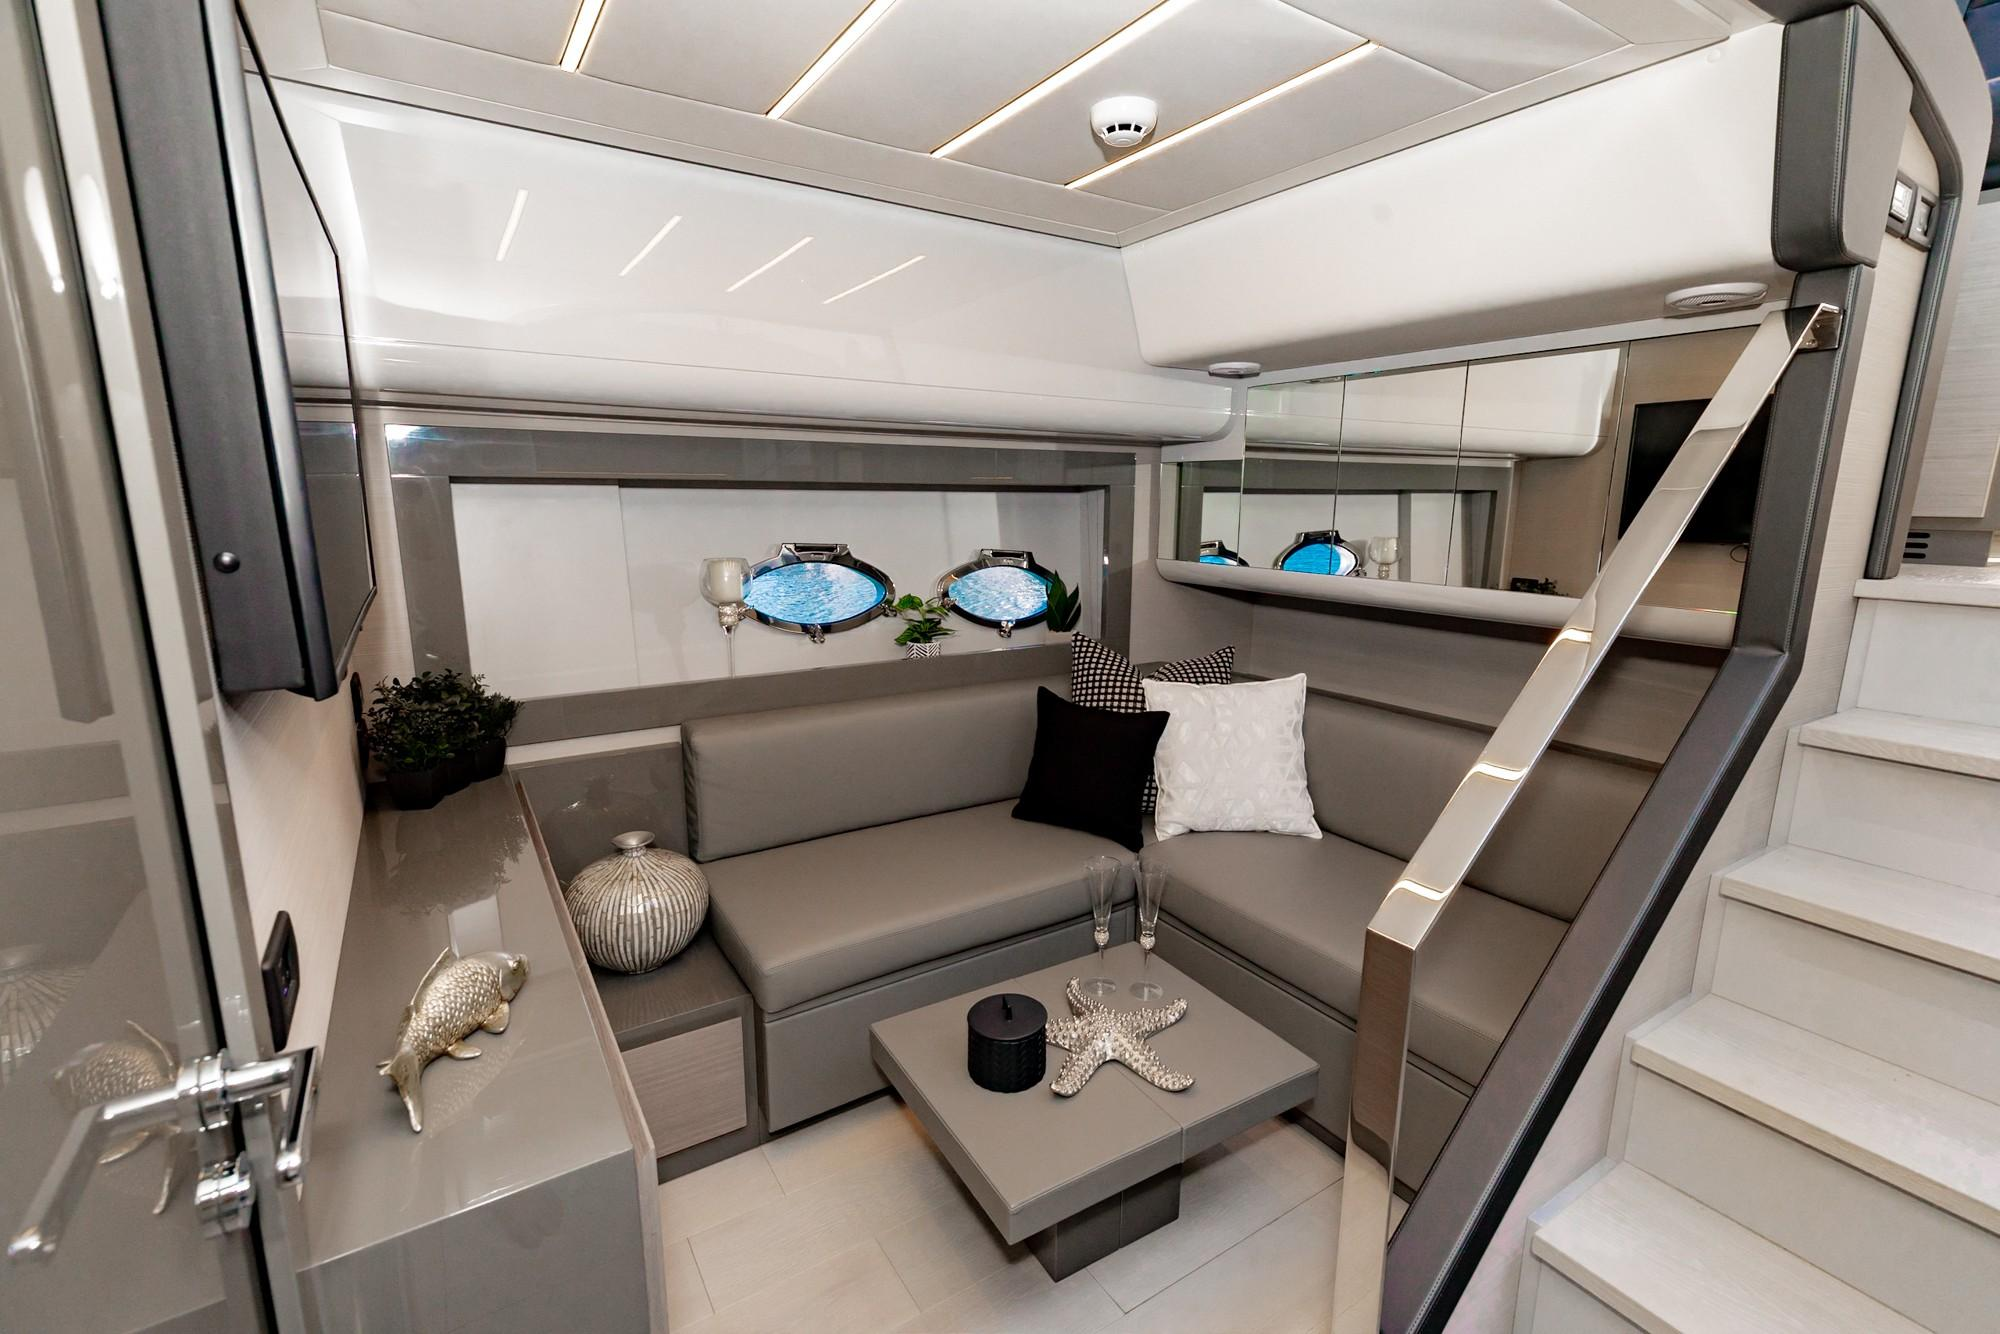 2019 Pershing 62 #TB28JR inventory image at Sun Country Yachts in Newport Beach